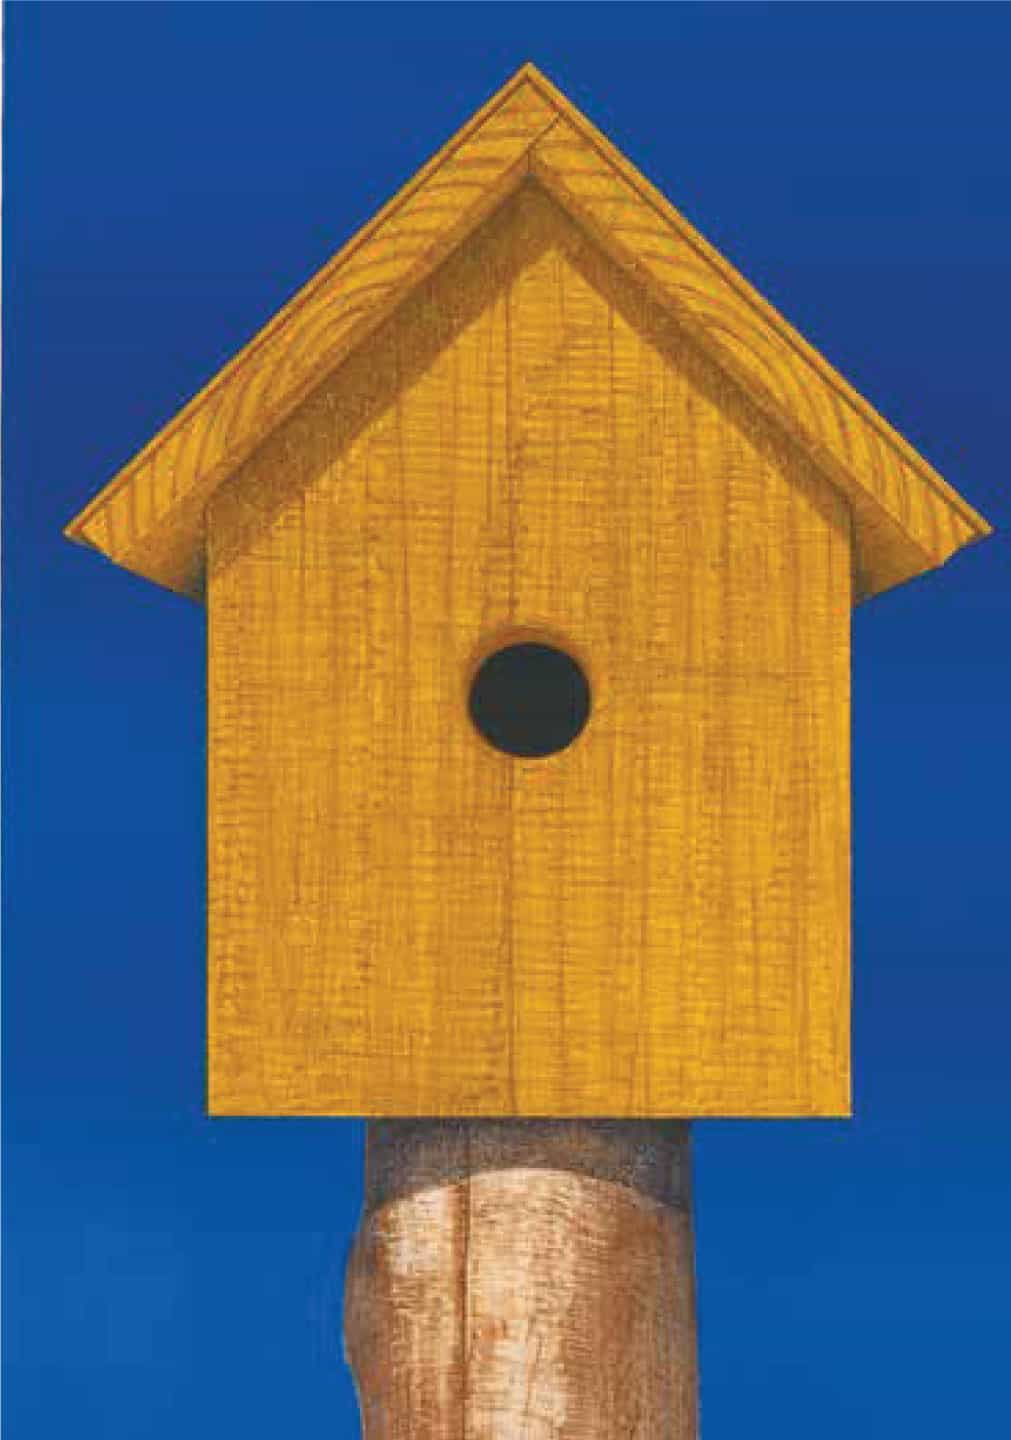 Edward Rice, <em>Birdhouse</em>, 1996. Lithograph in three colors on arches paper. Gift of the artist.